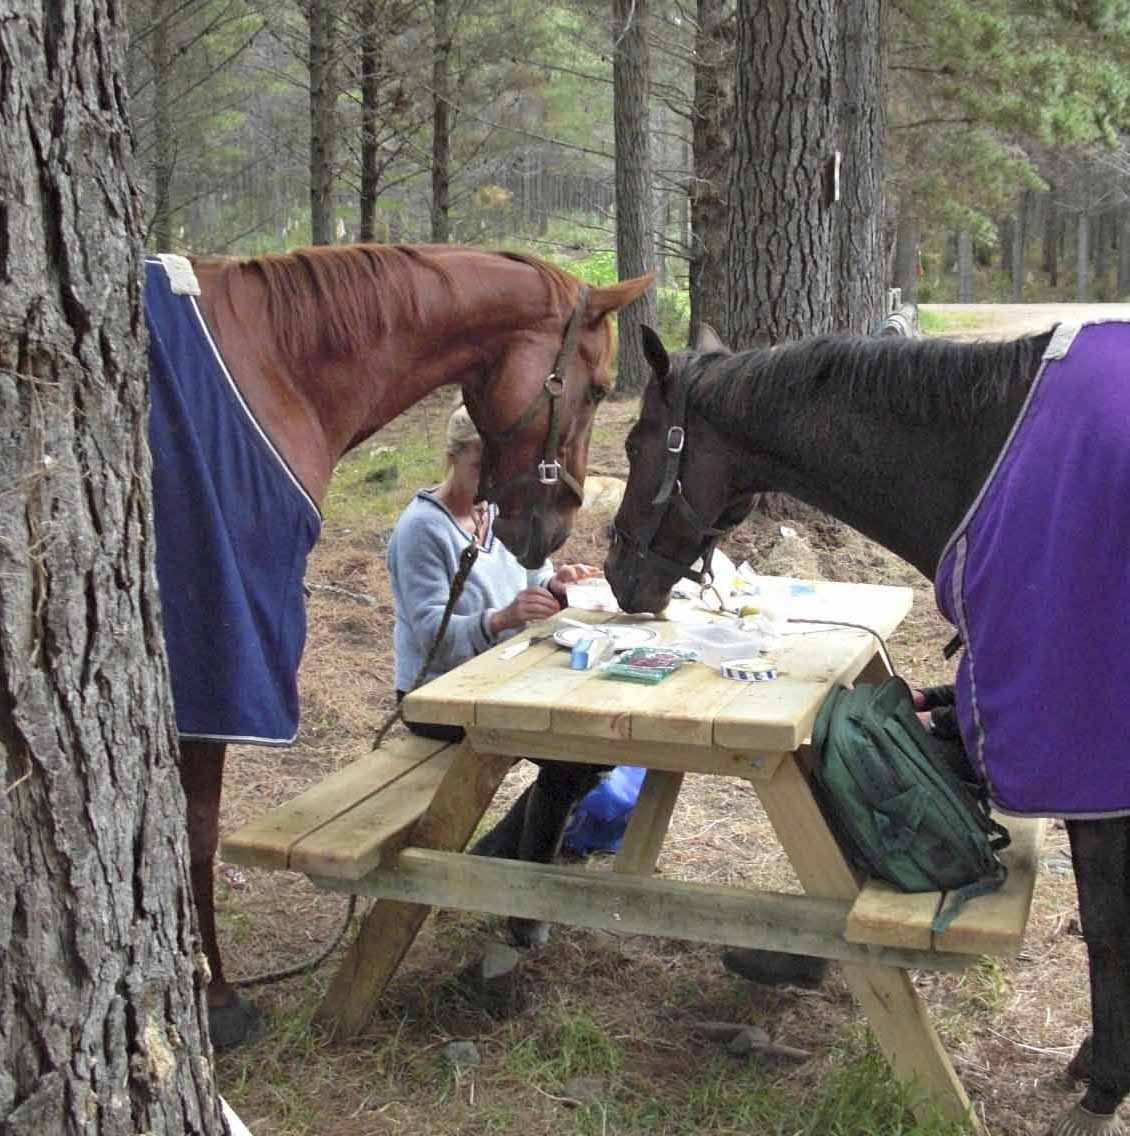 Now thats a horse Friendly picnic